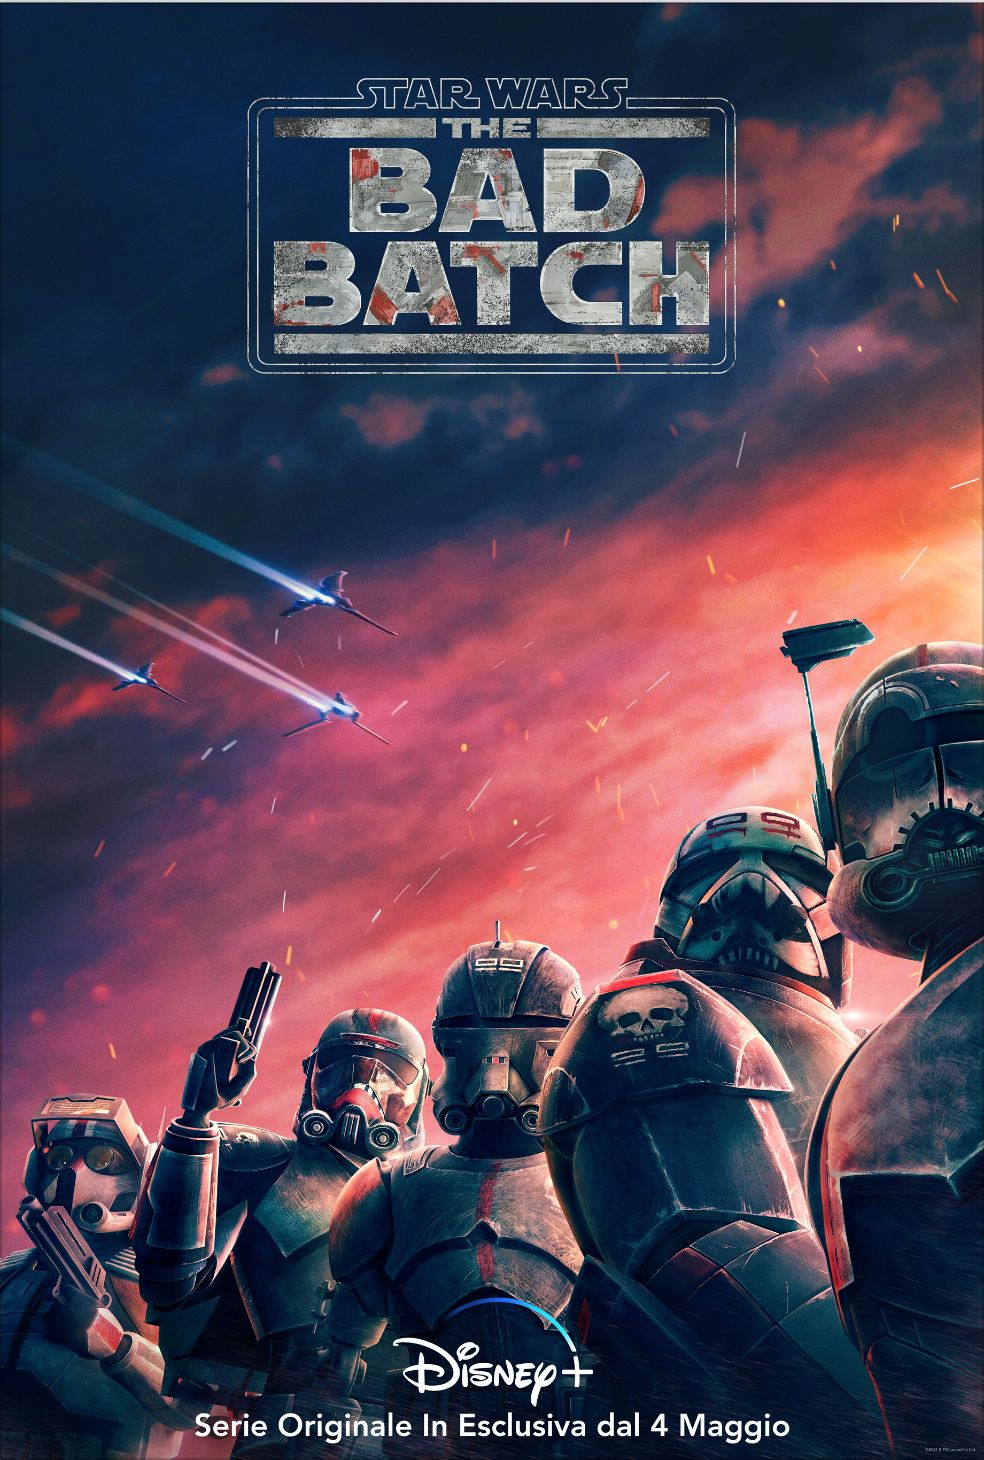 Star Wars: The Bad Batch: uscita, trama e personaggi